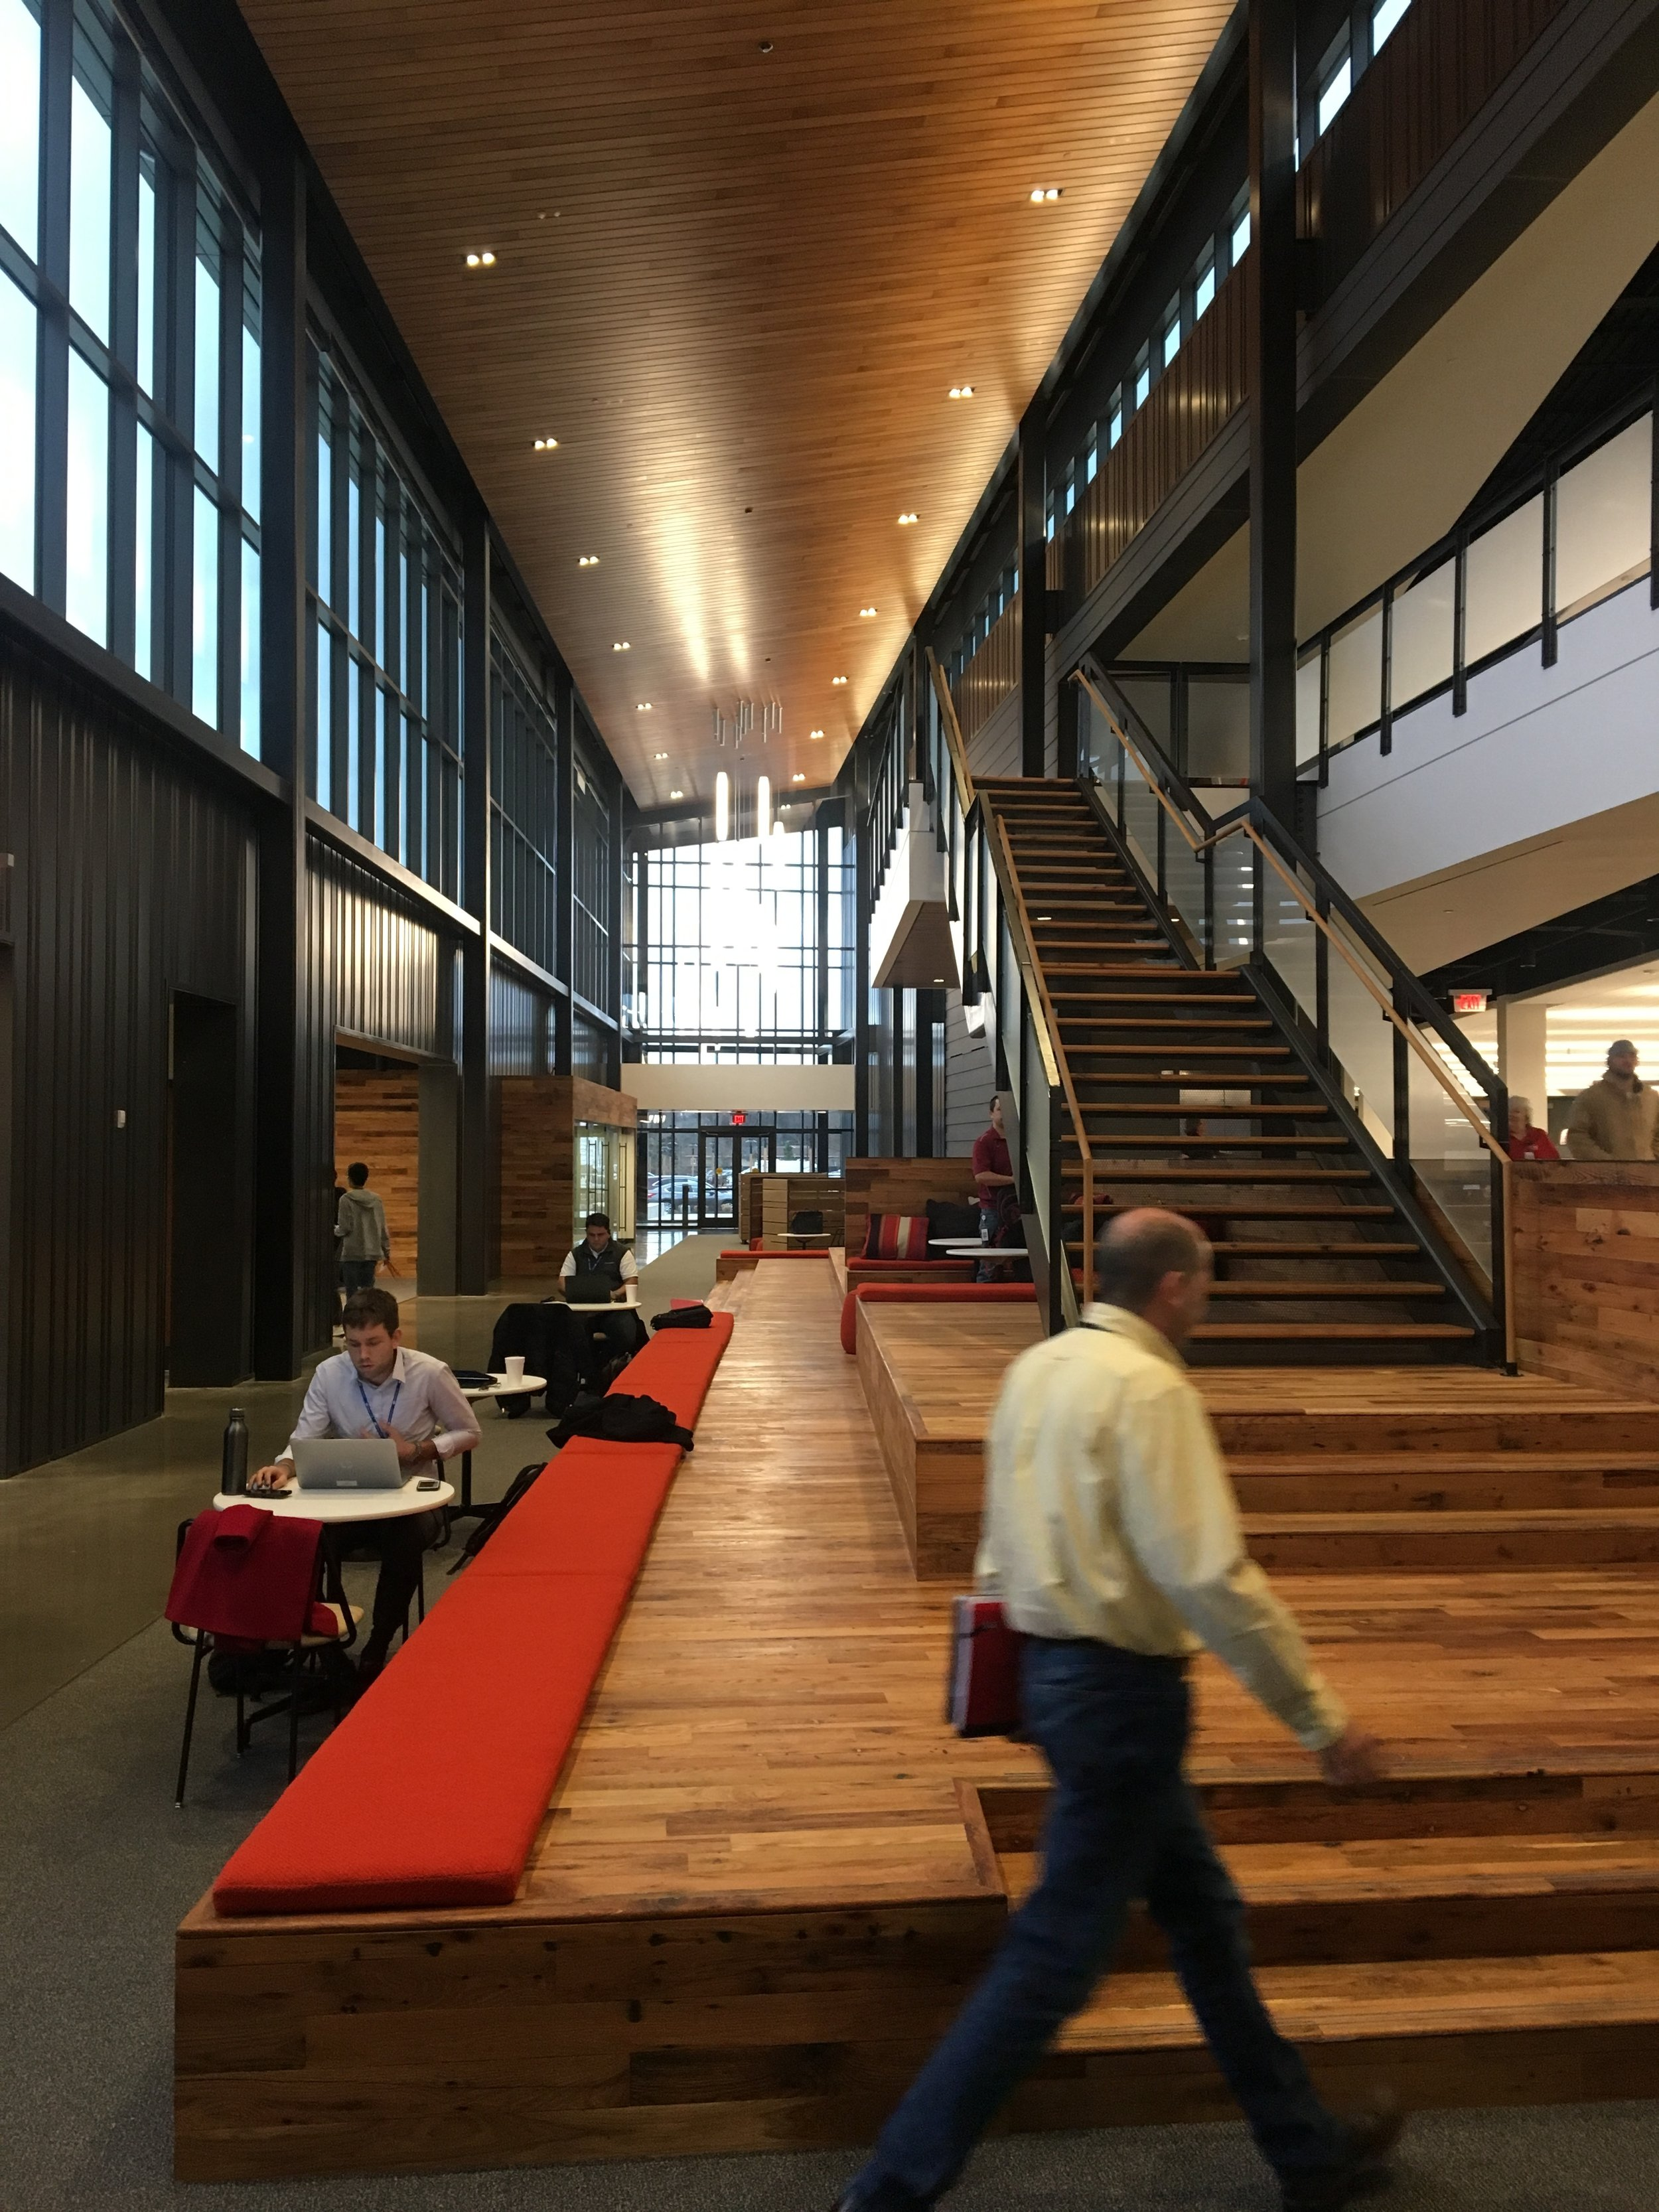 Tyson Foods, one of three Fortune 500 companies headquartered in the region, opened its impressive downtown technology hub in Springdale in 2017.